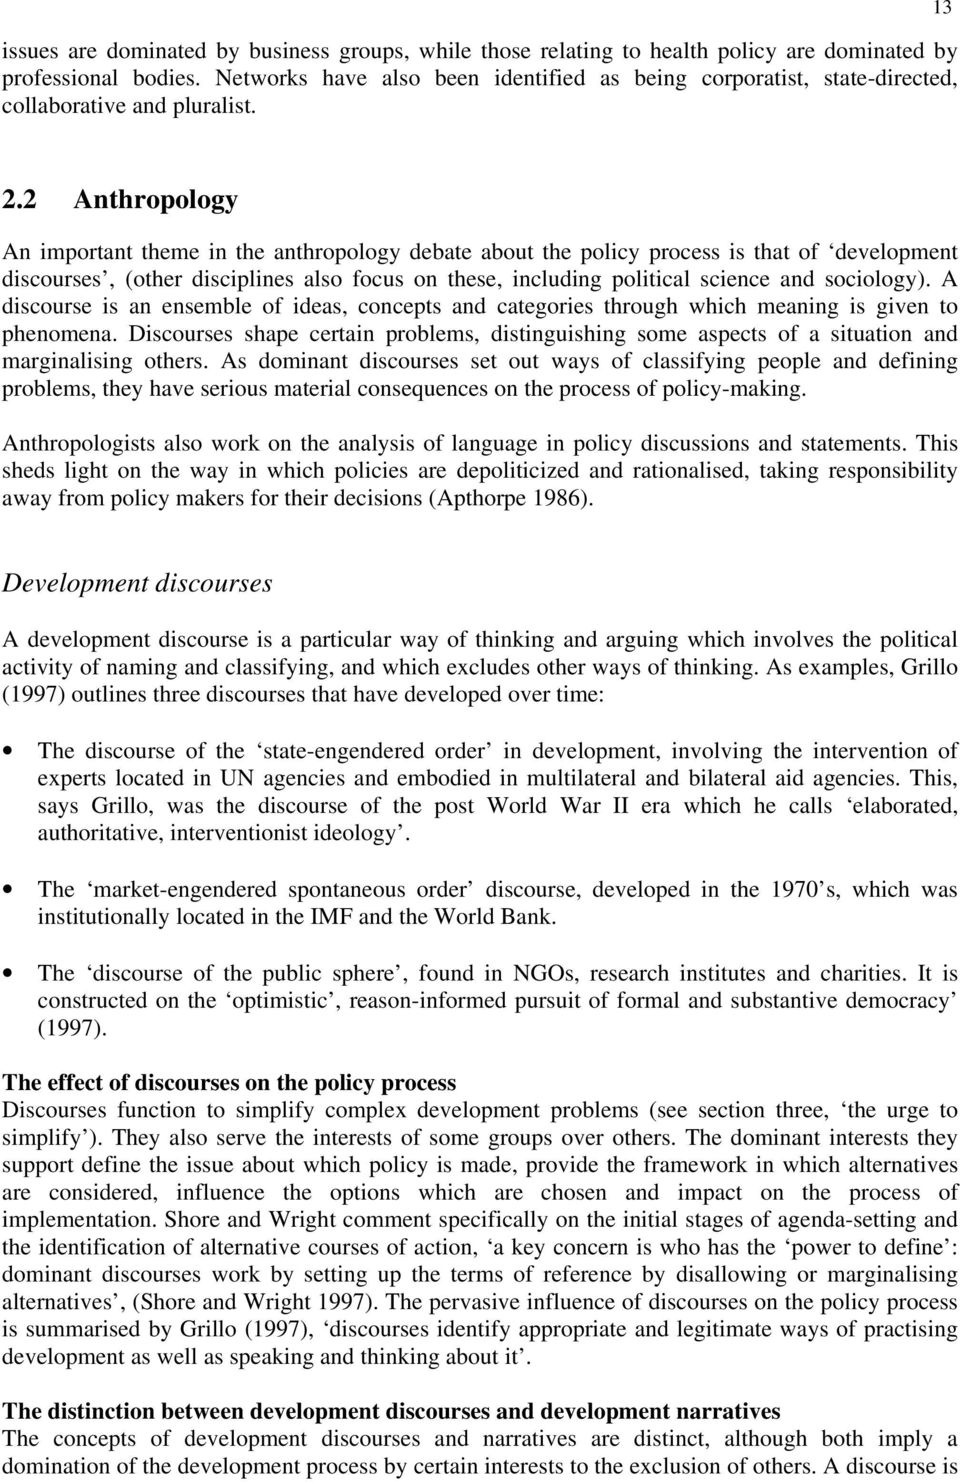 2 Anthropology An important theme in the anthropology debate about the policy process is that of development discourses, (other disciplines also focus on these, including political science and